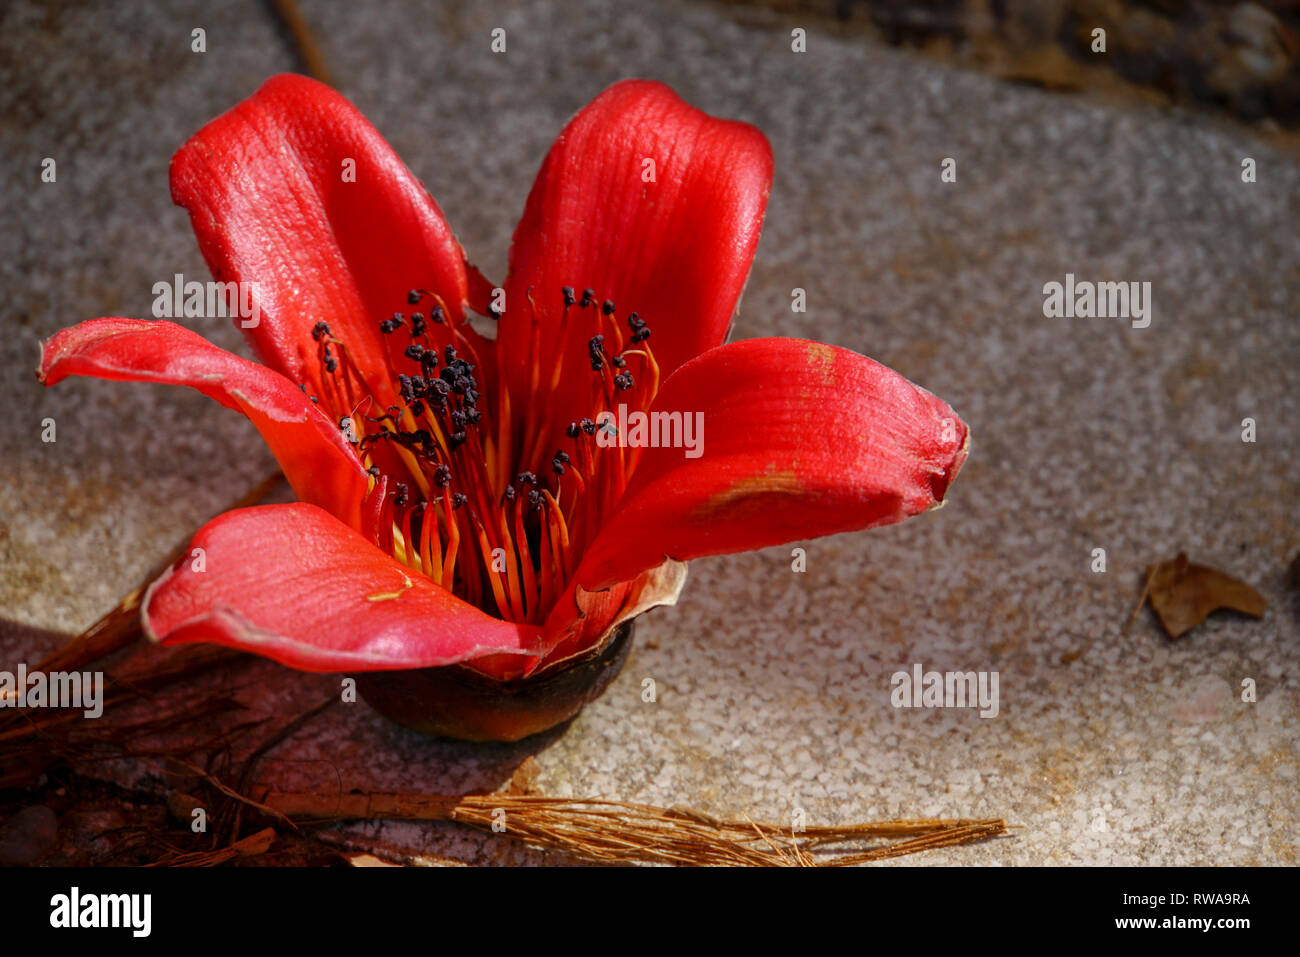 Close up of the red flower of the Delonix regia tree (AKA royal poinciana, flamboyant or flame tree) - Stock Image